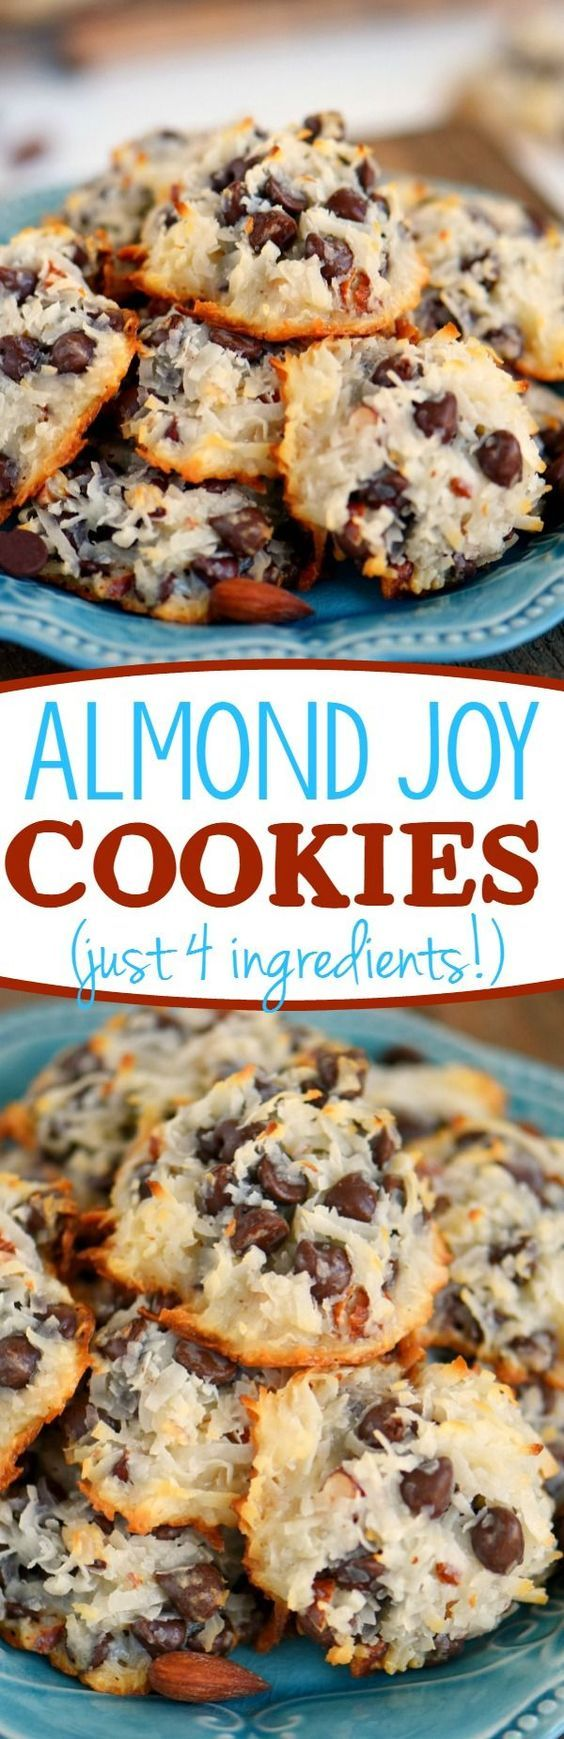 These easy Almond Joy Cookies take just four ingredients and don't even require a mixer! No beating no chilling just mix 'em up and throw 'em in the oven EASY! You're going to love these ooey gooey fabulous cookies!